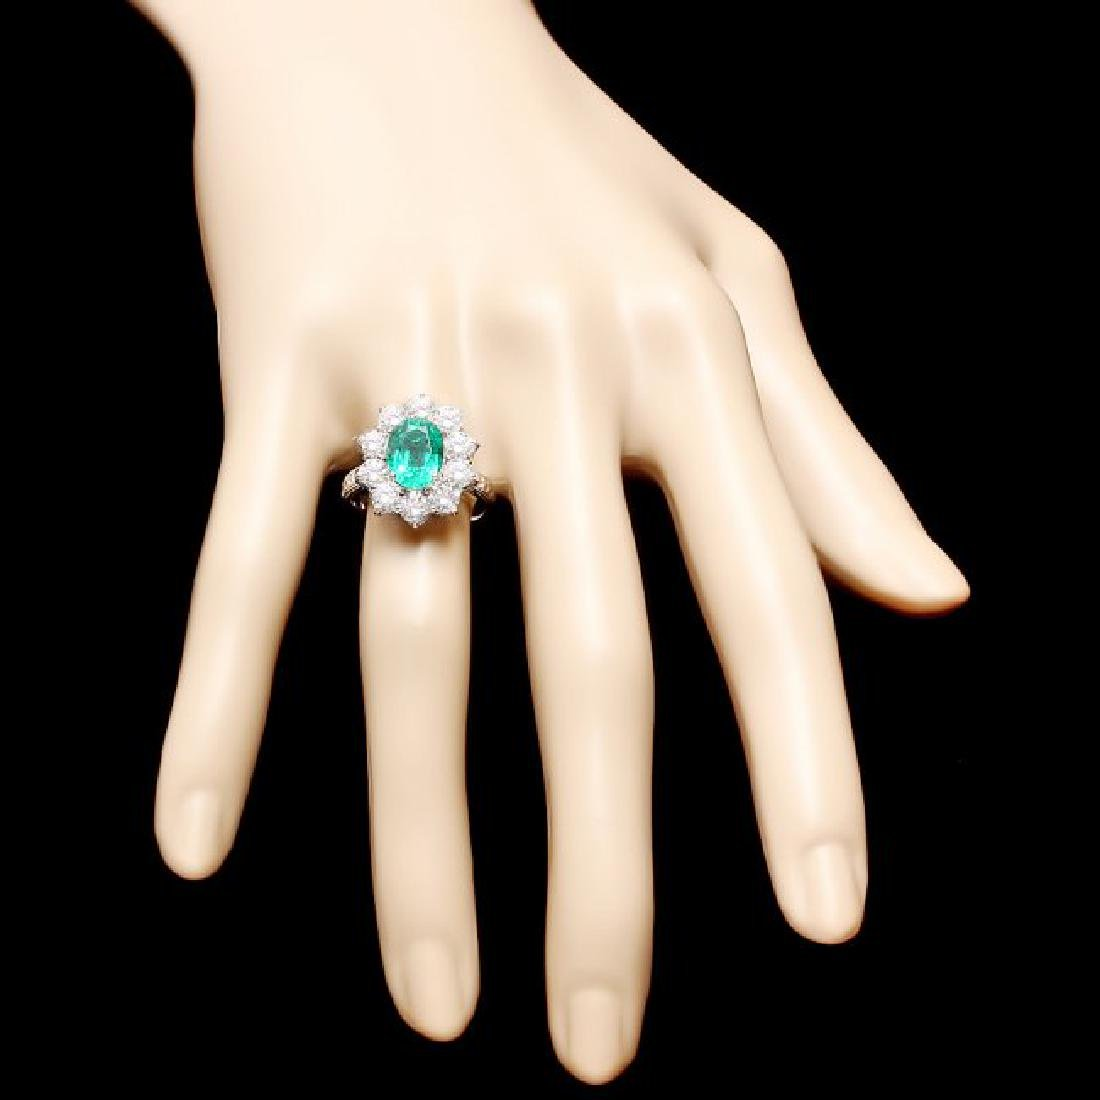 18k White Gold 2.40ct Emerald 2.15ct Diamond Ring - 4